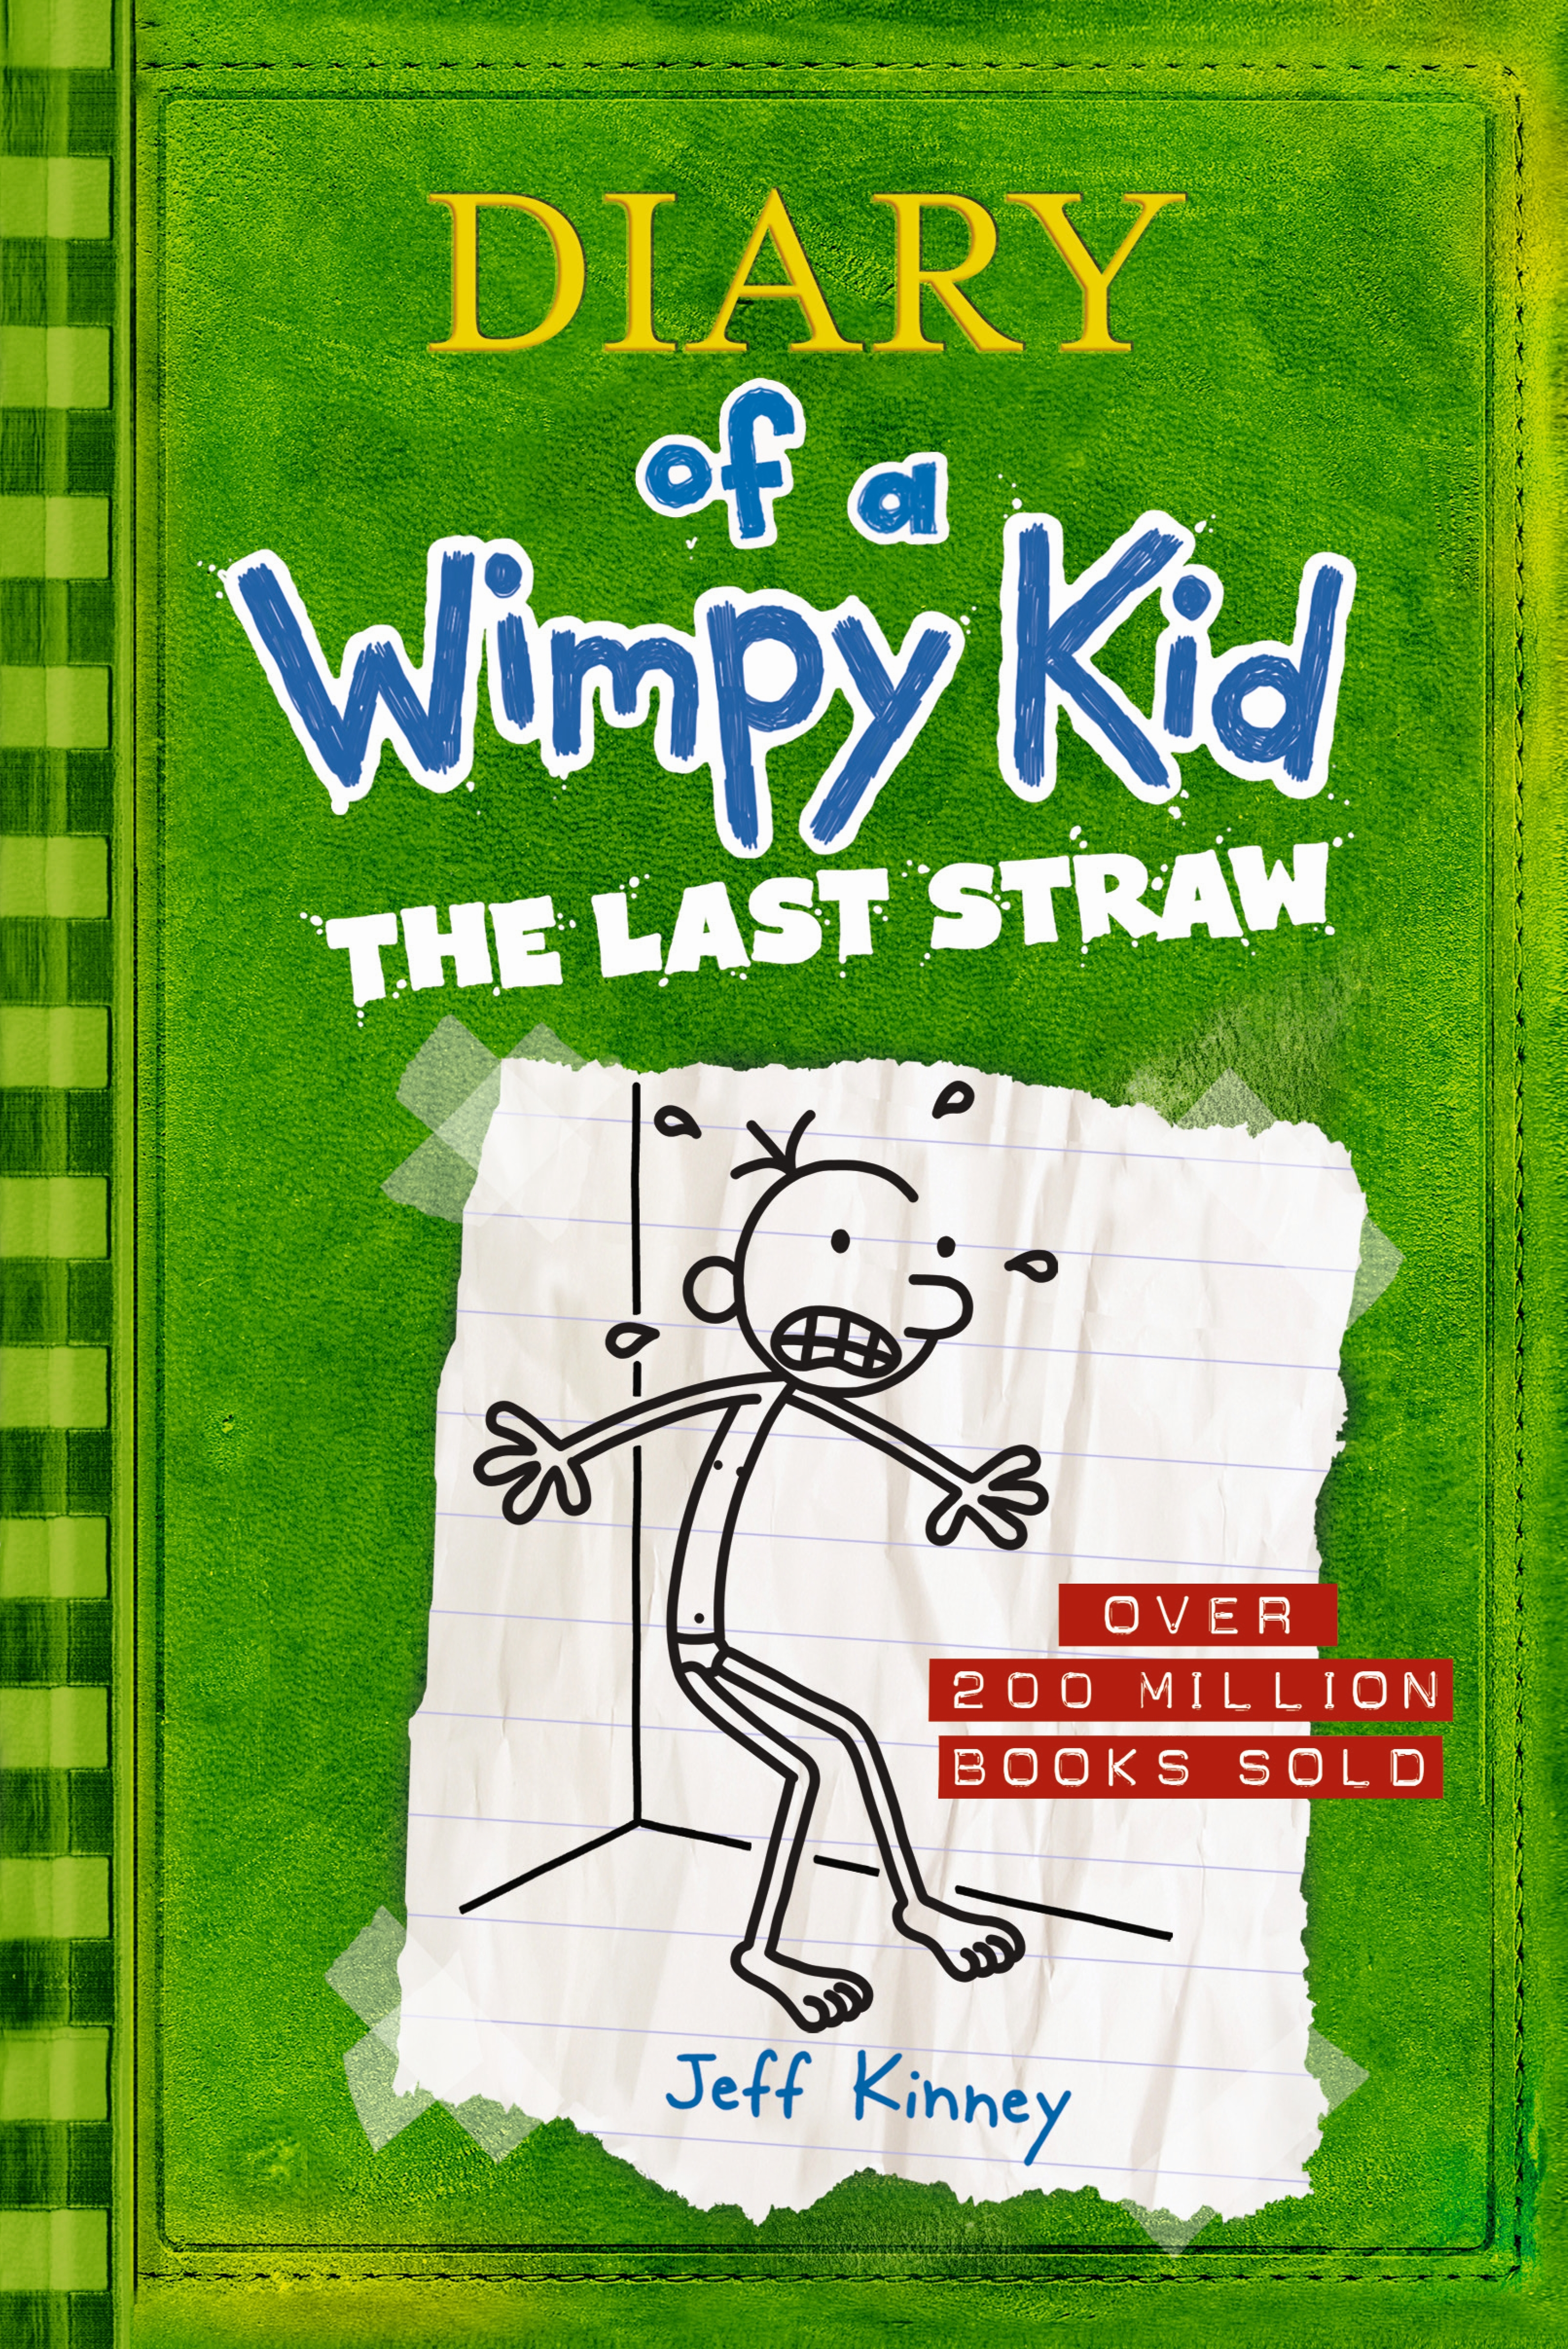 Diary wimpy kid the last straw book report